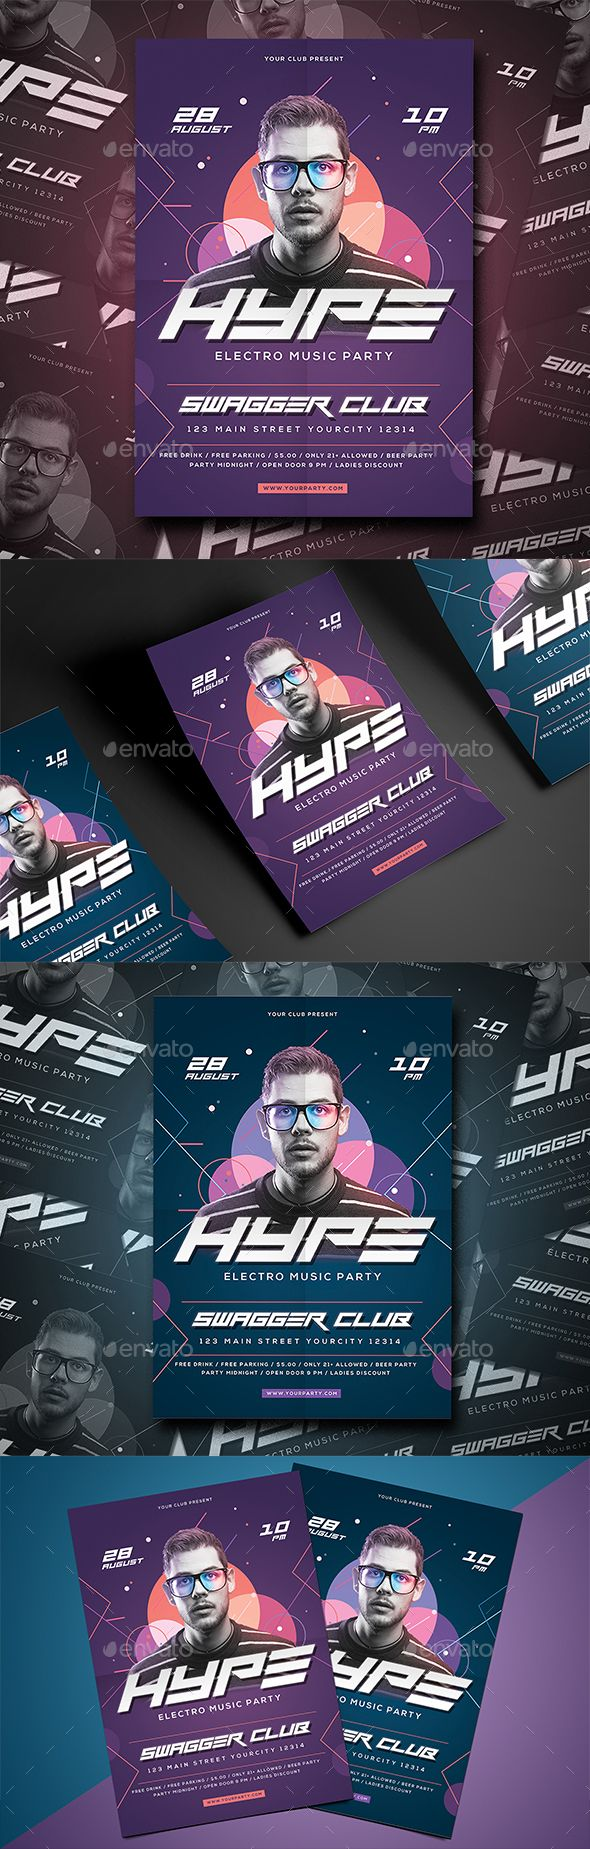 best ideas about party flyer graphic design modern edm party flyer